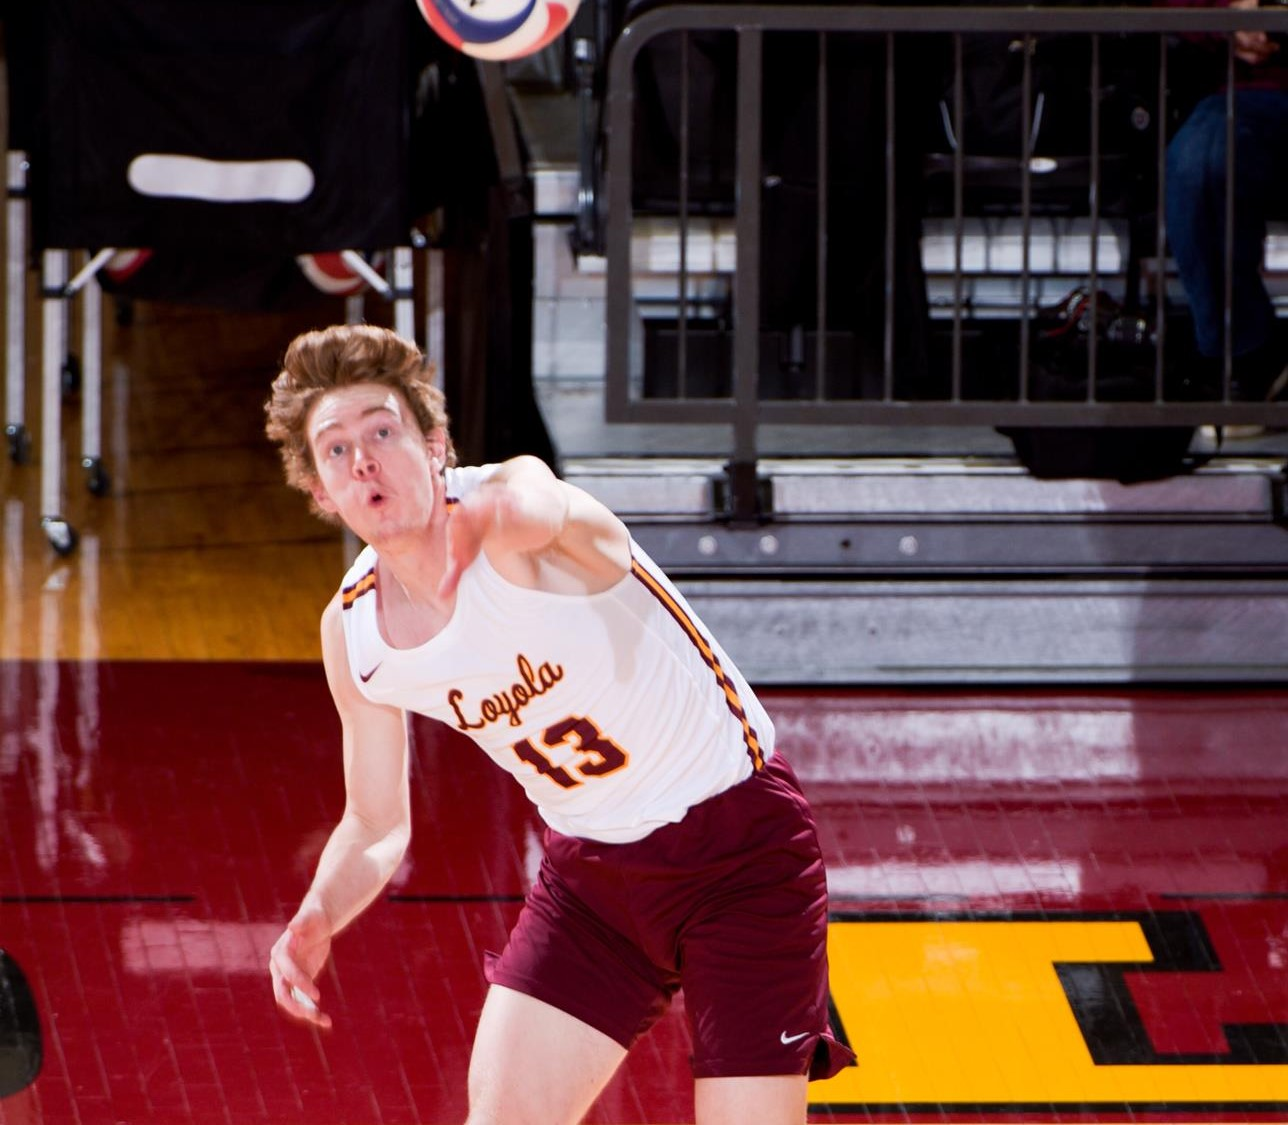 Loyola Wins Its Sixth Straight With An Impressive Road